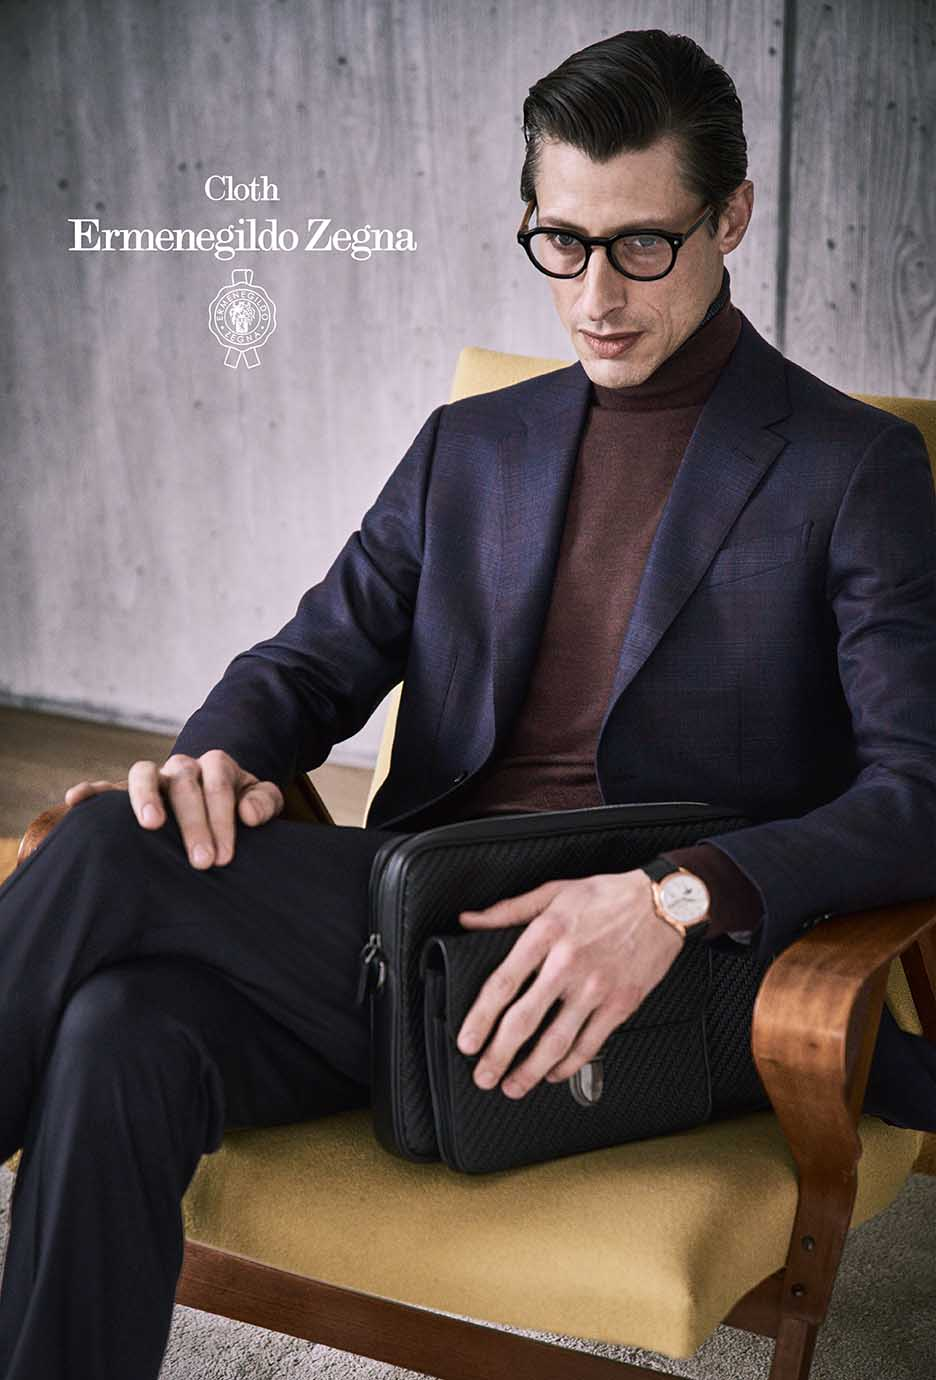 Zegna Anteprima fall winter collection 18/19